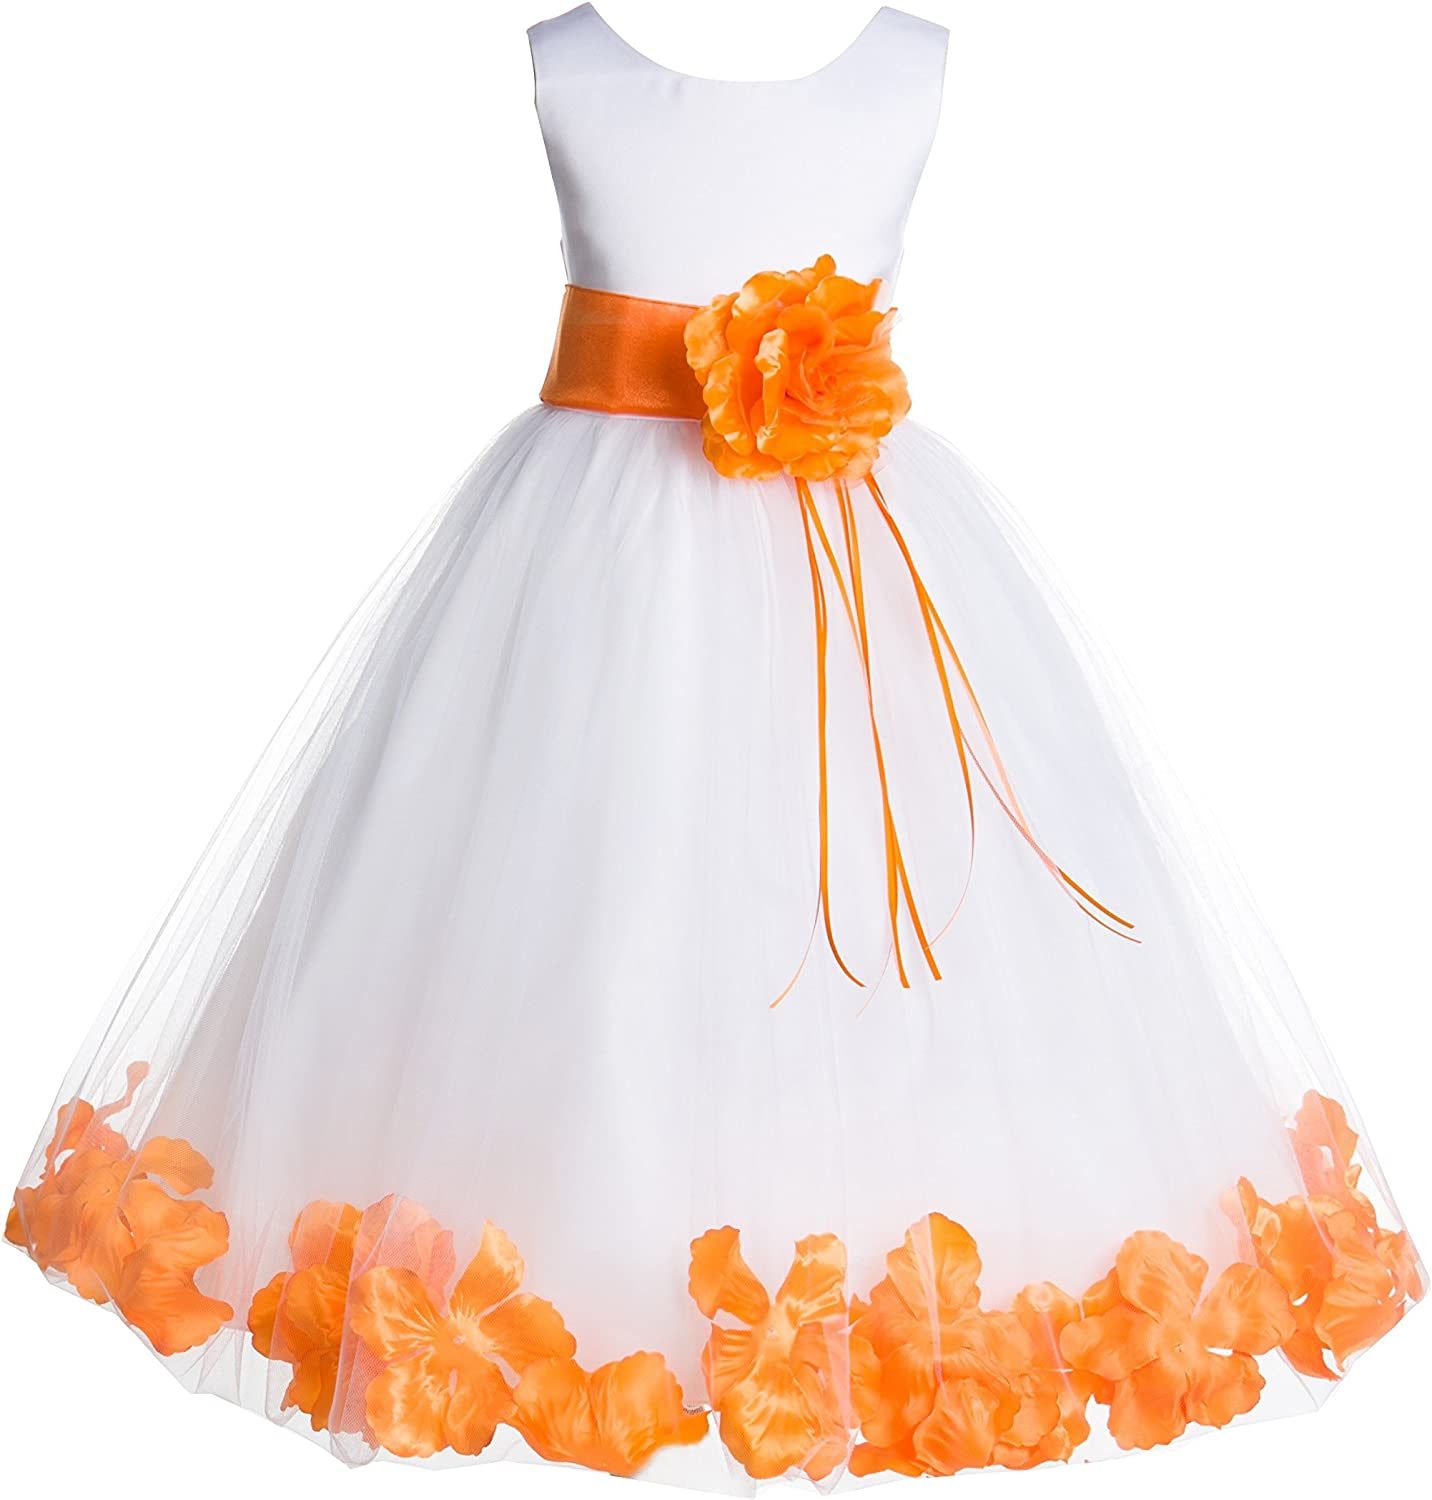 Wedding Pageant Floral Rose Petals White Tulle Flower Girl Dress Toddler 007